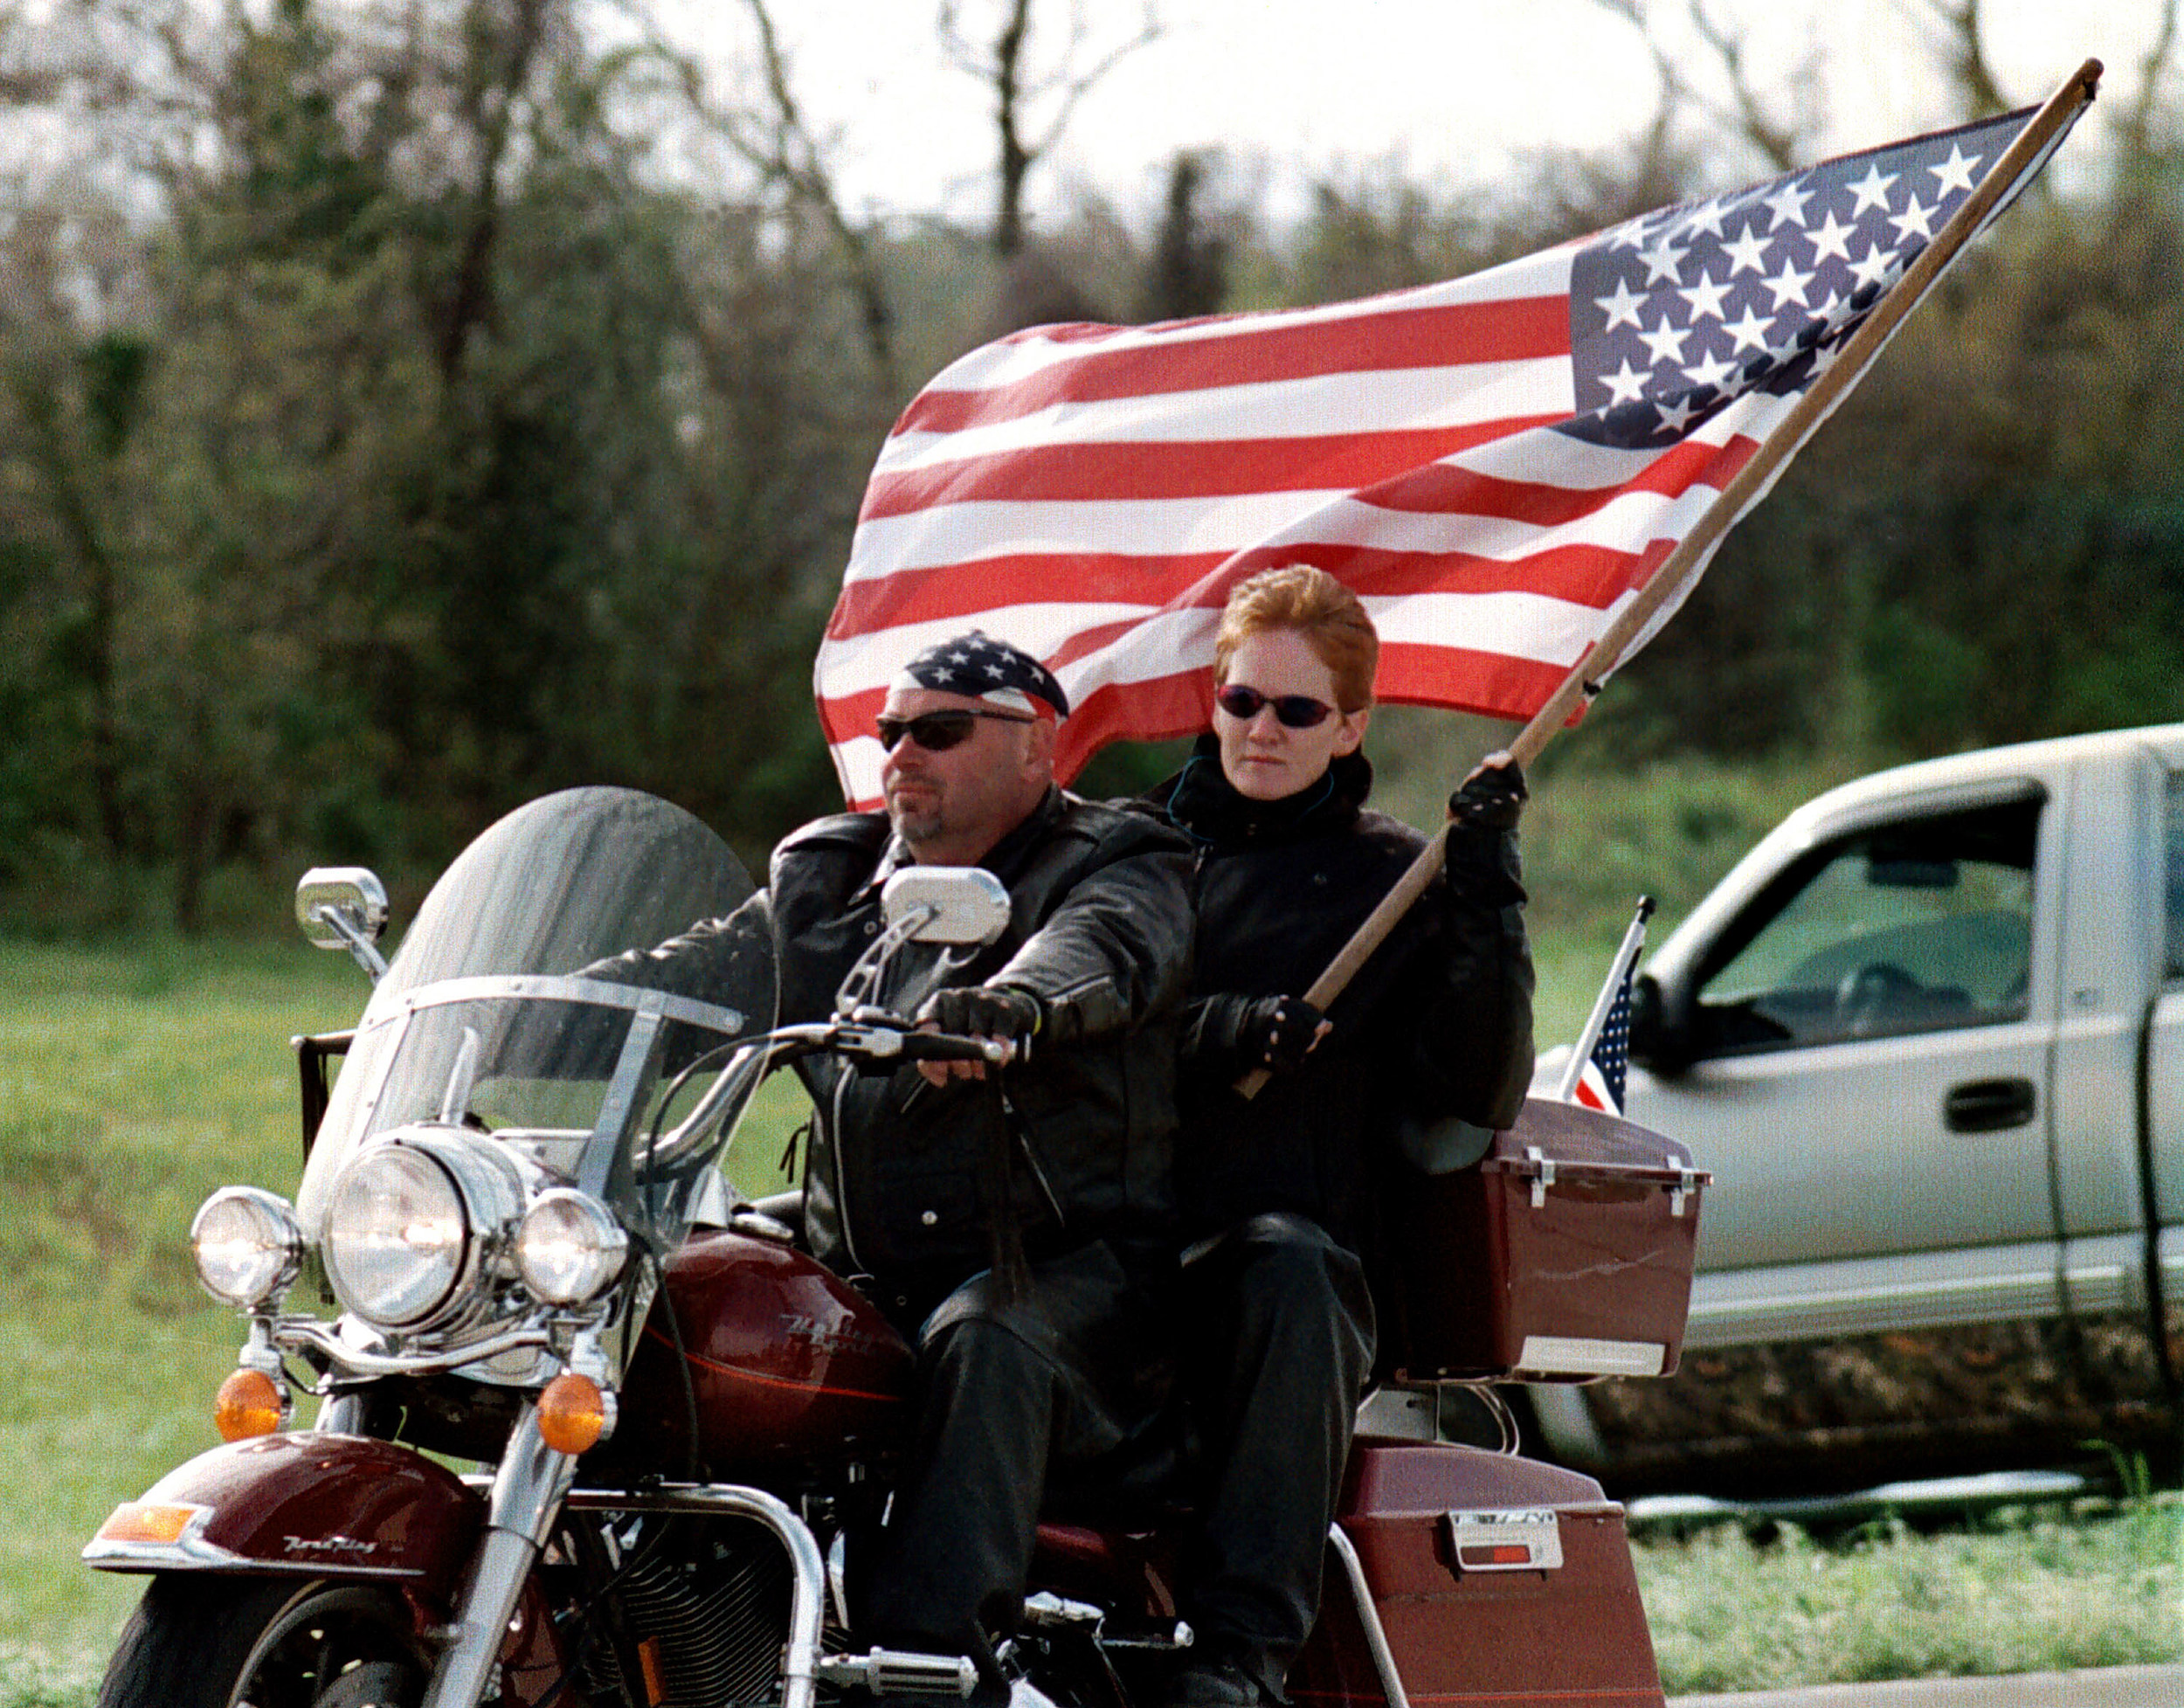 El Paso motorcyclists and bikers gather to honor fallen heroes